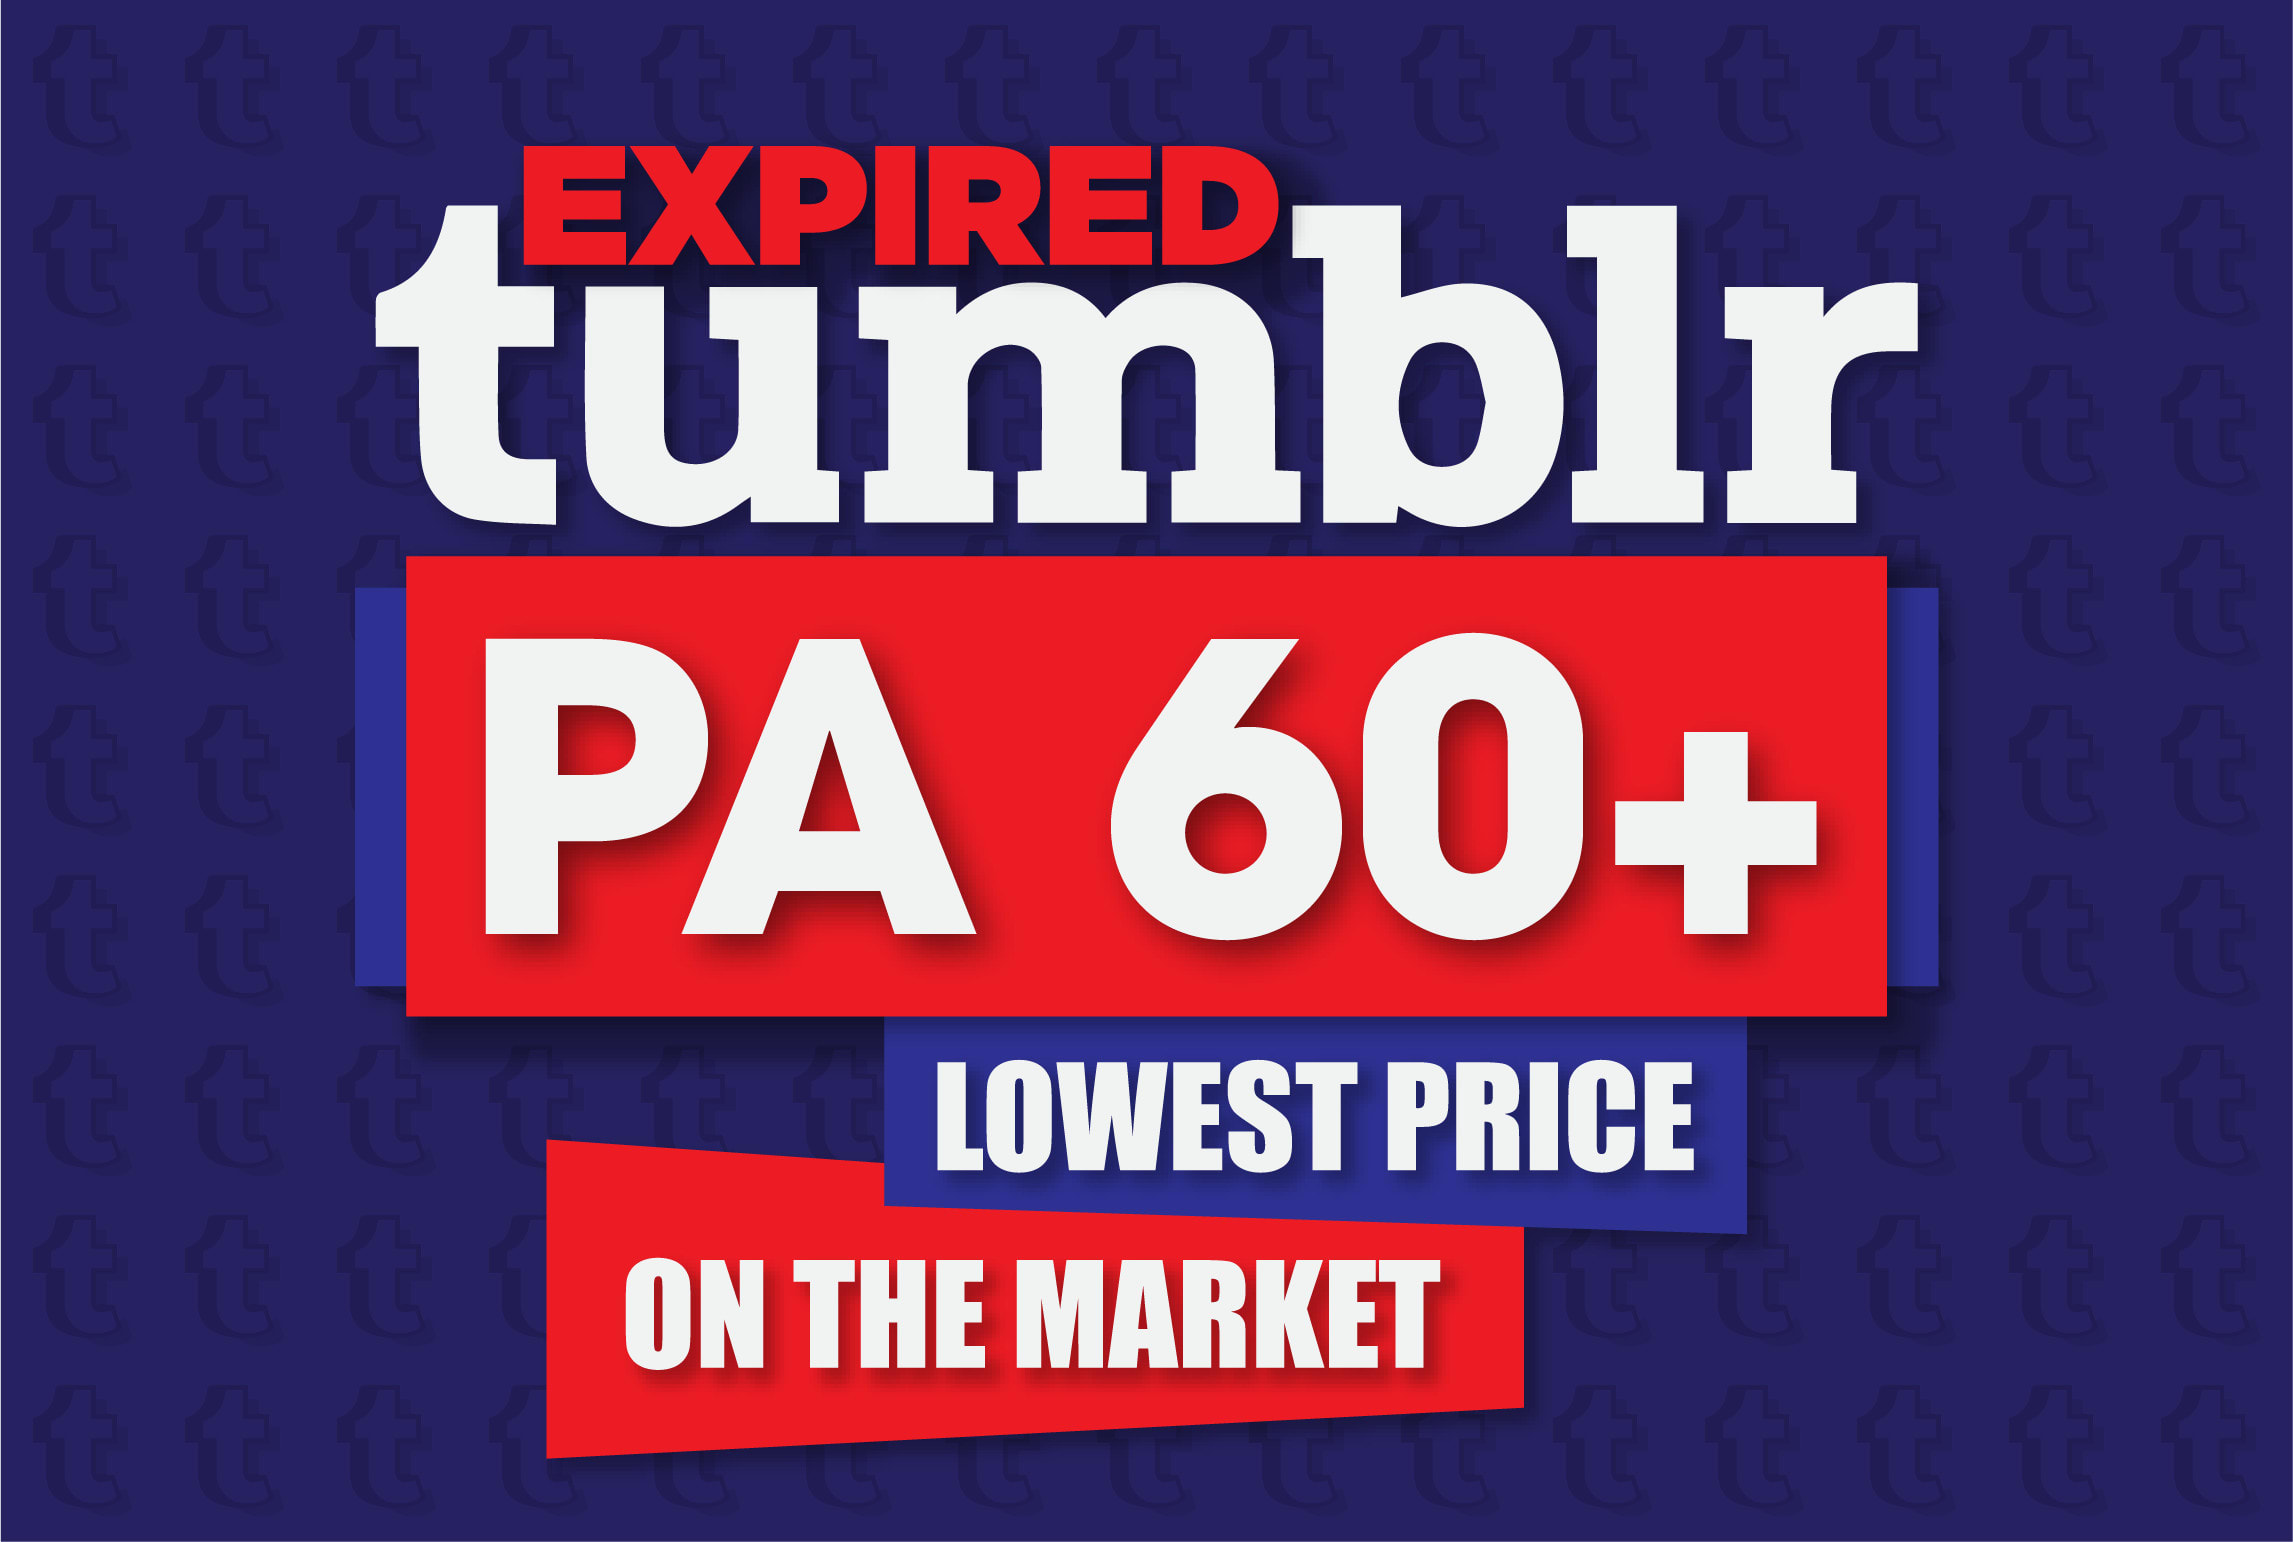 I will register 20 expired tumblr blogs pa 60 plus with backlinks